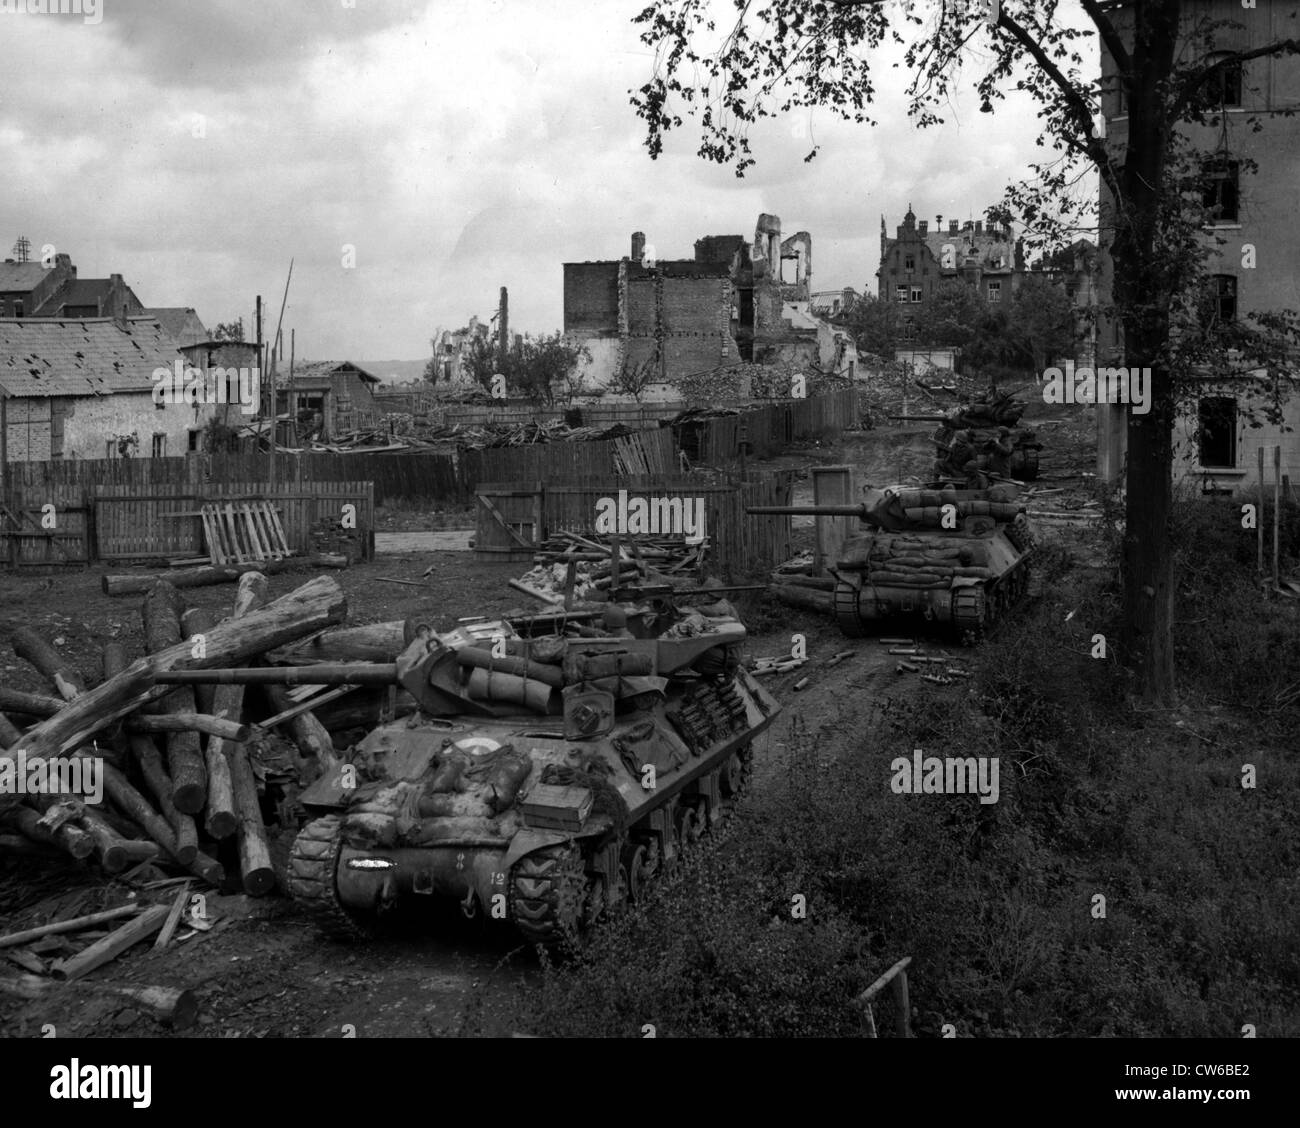 3' guns on M-10's fire on and knock out enemy observation posts in Aachen (Germany) October 14, 1944 - Stock Image